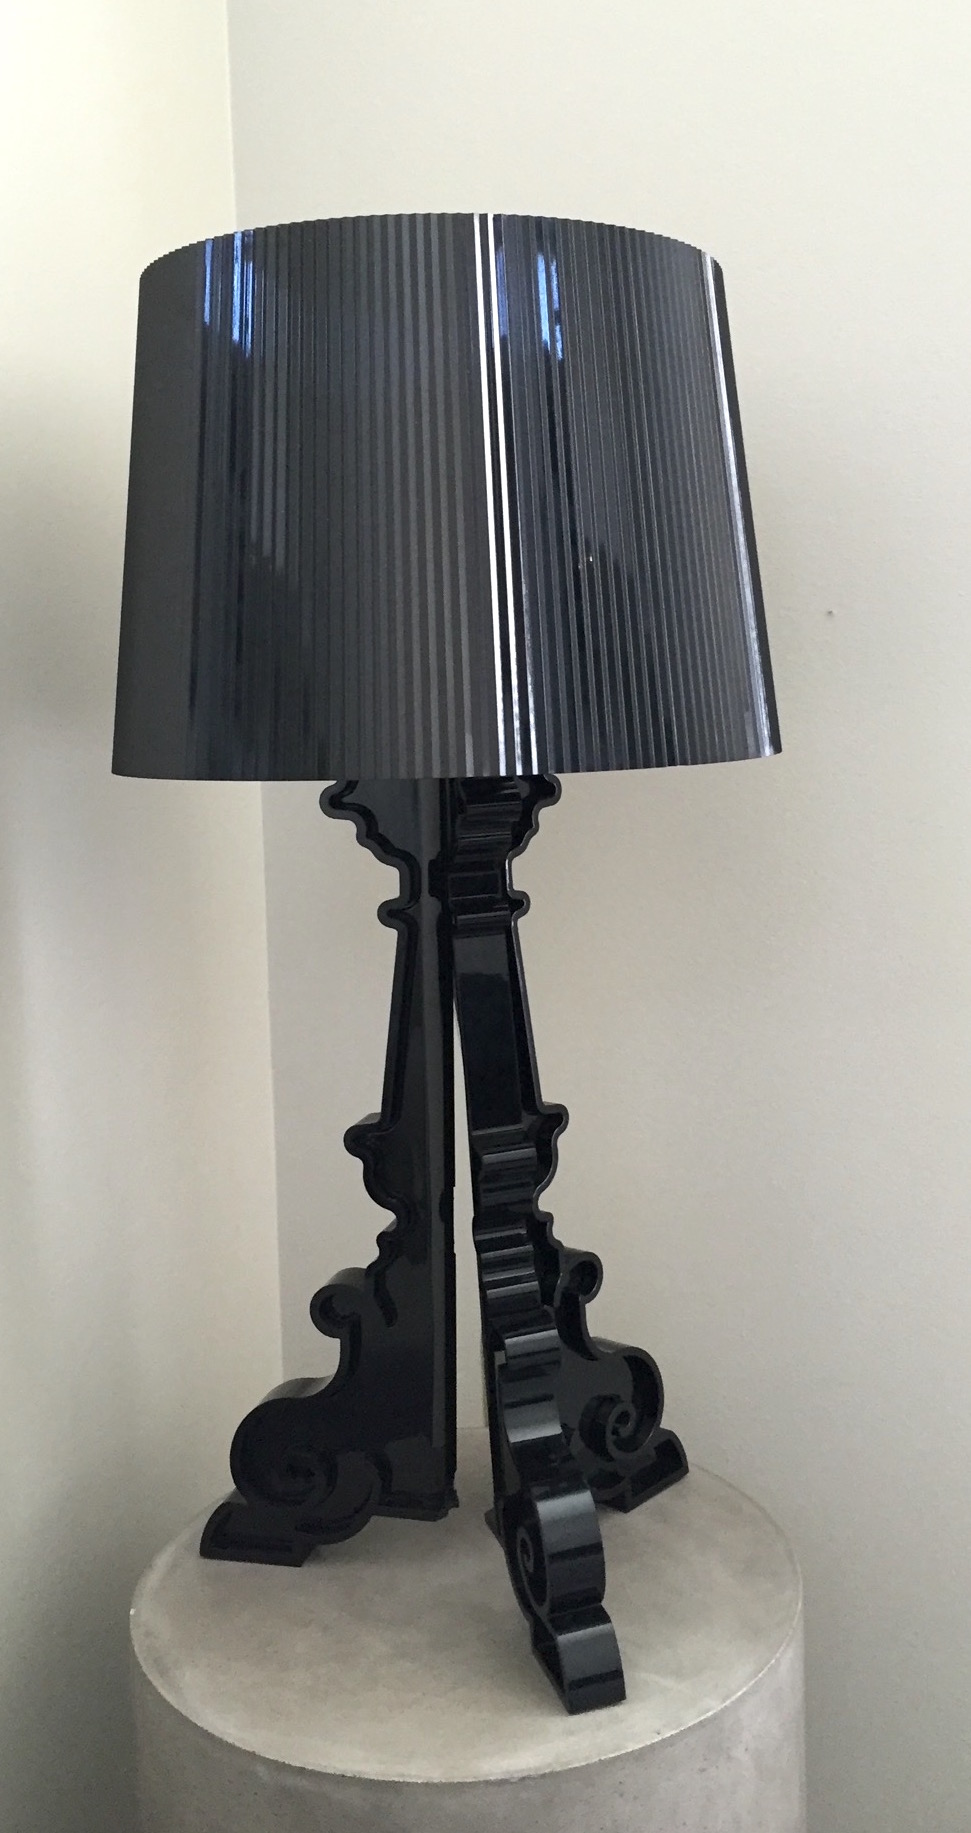 This lamp was sent from NYC to LA and arrived in one piece! Thank you Shyp. Also, thank you for the lamp, mom.